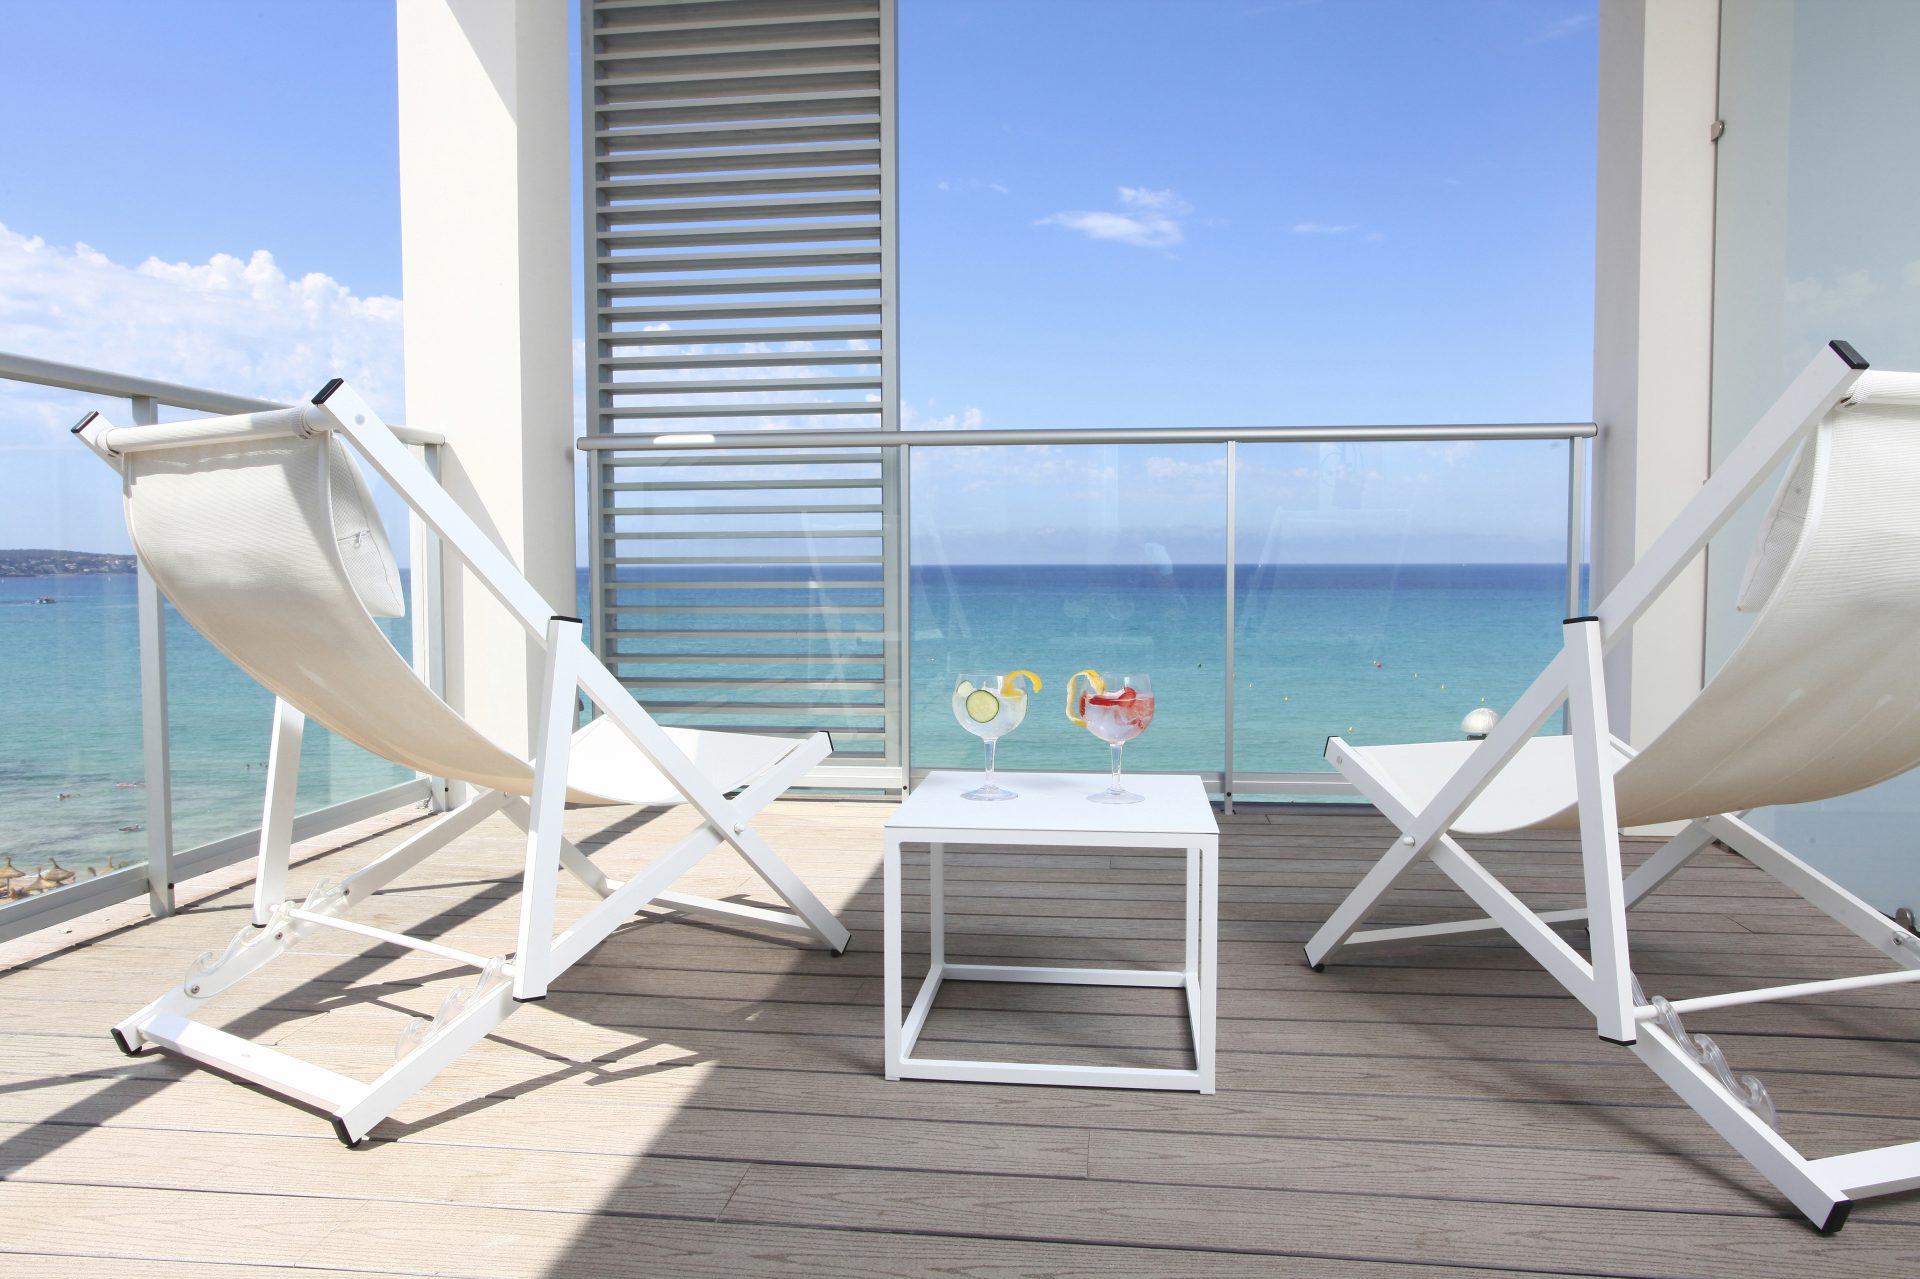 Pure Salt - Luxury Hotels - Bedroom balcony - Playa de Palma - Mallorca